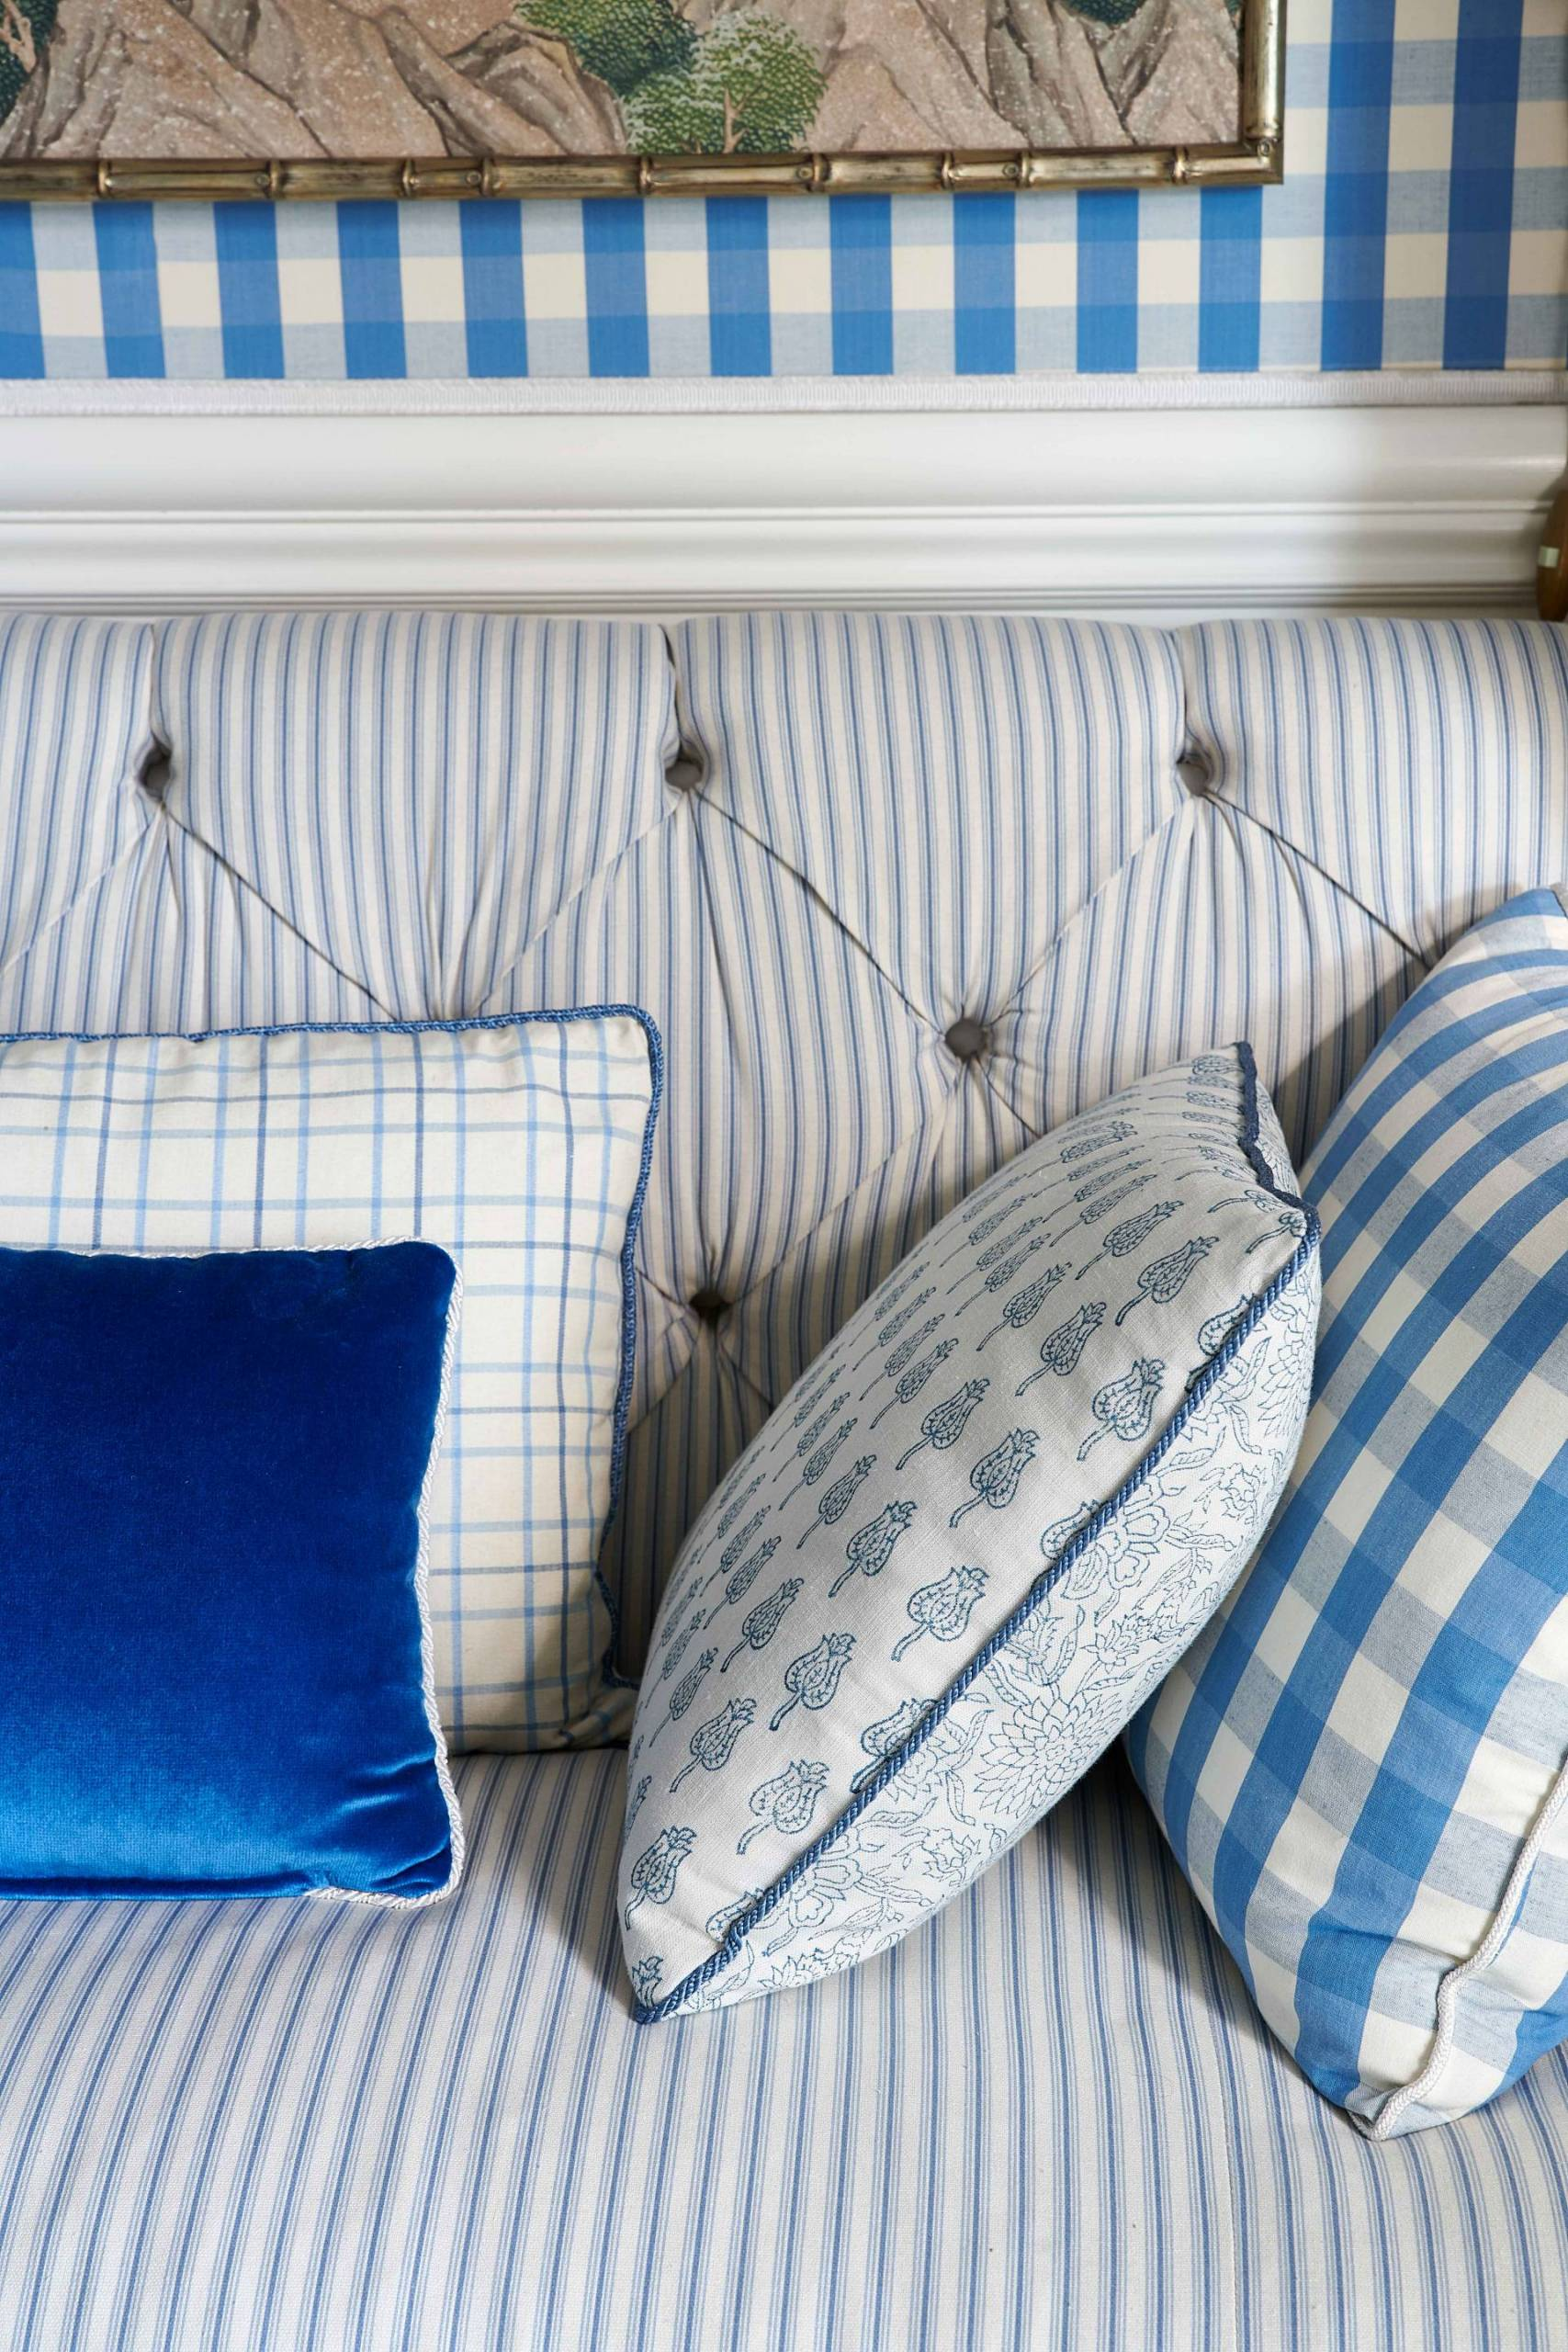 Stripe and Checkered Pillows on Upholstered Bench